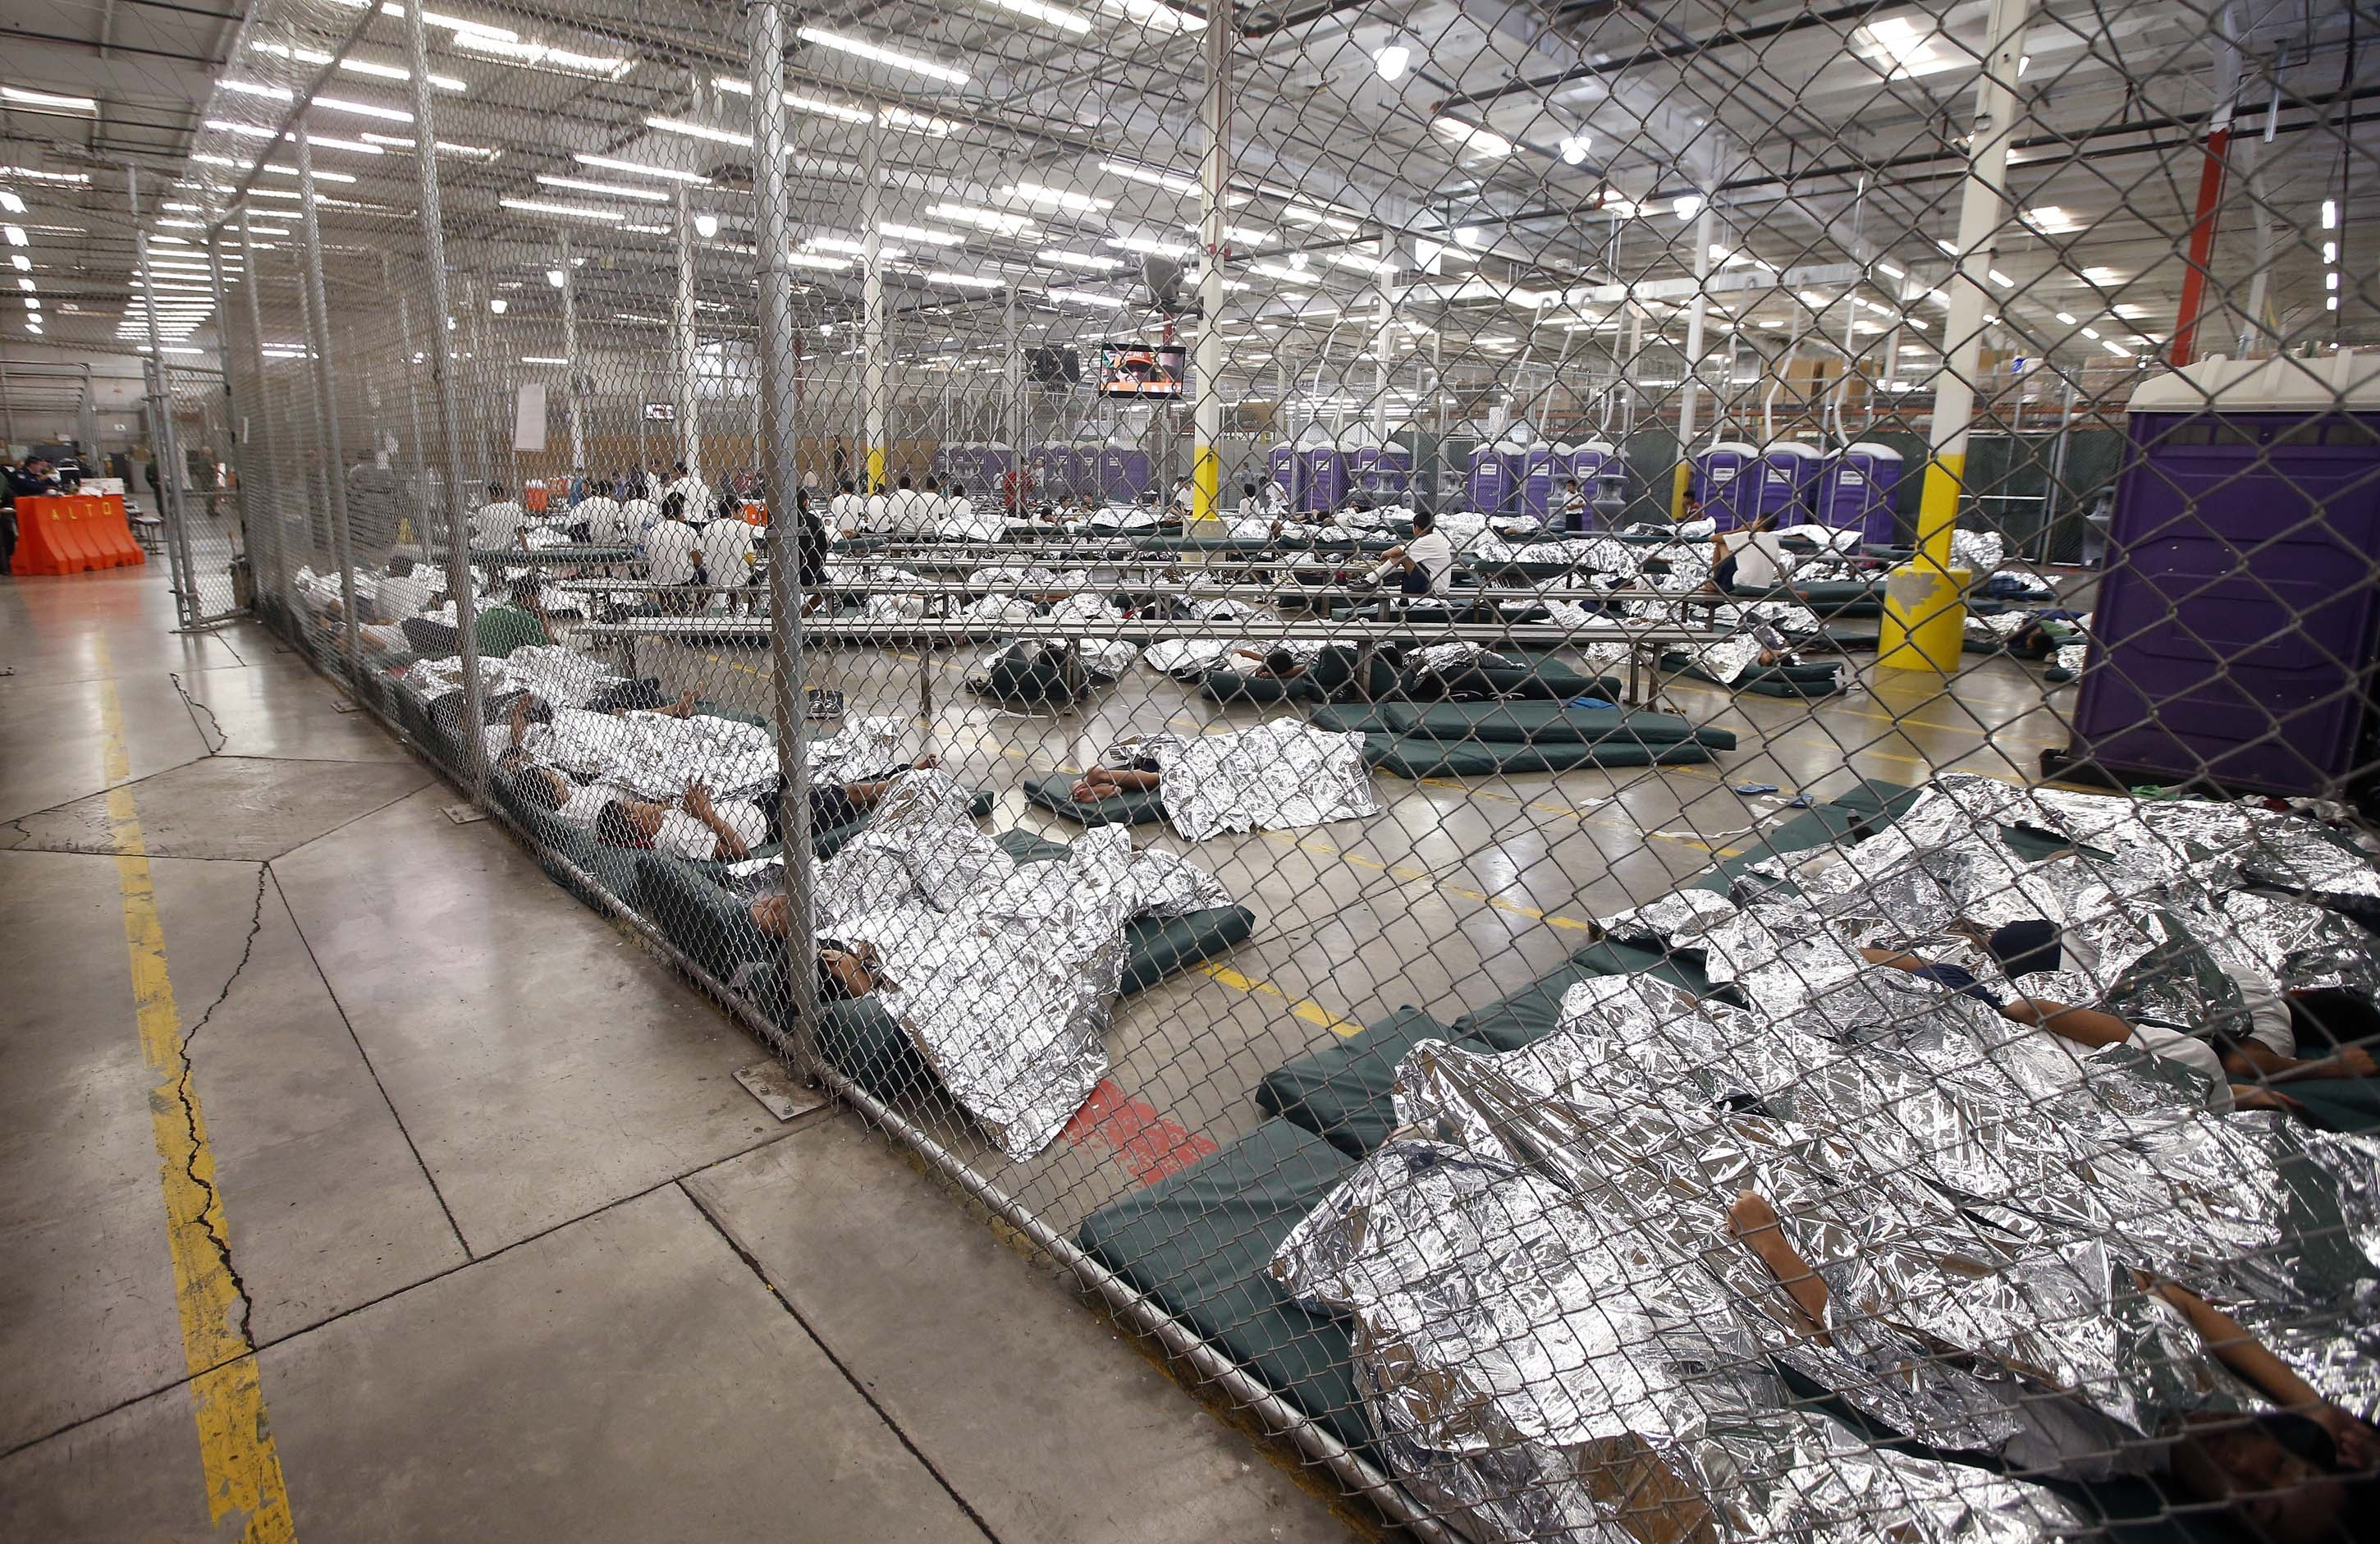 Detainees sleep and watch television in a holding cell where hundreds of mostly Central American immigrant children are being processed and held at the U.S. Customs and Border Protection